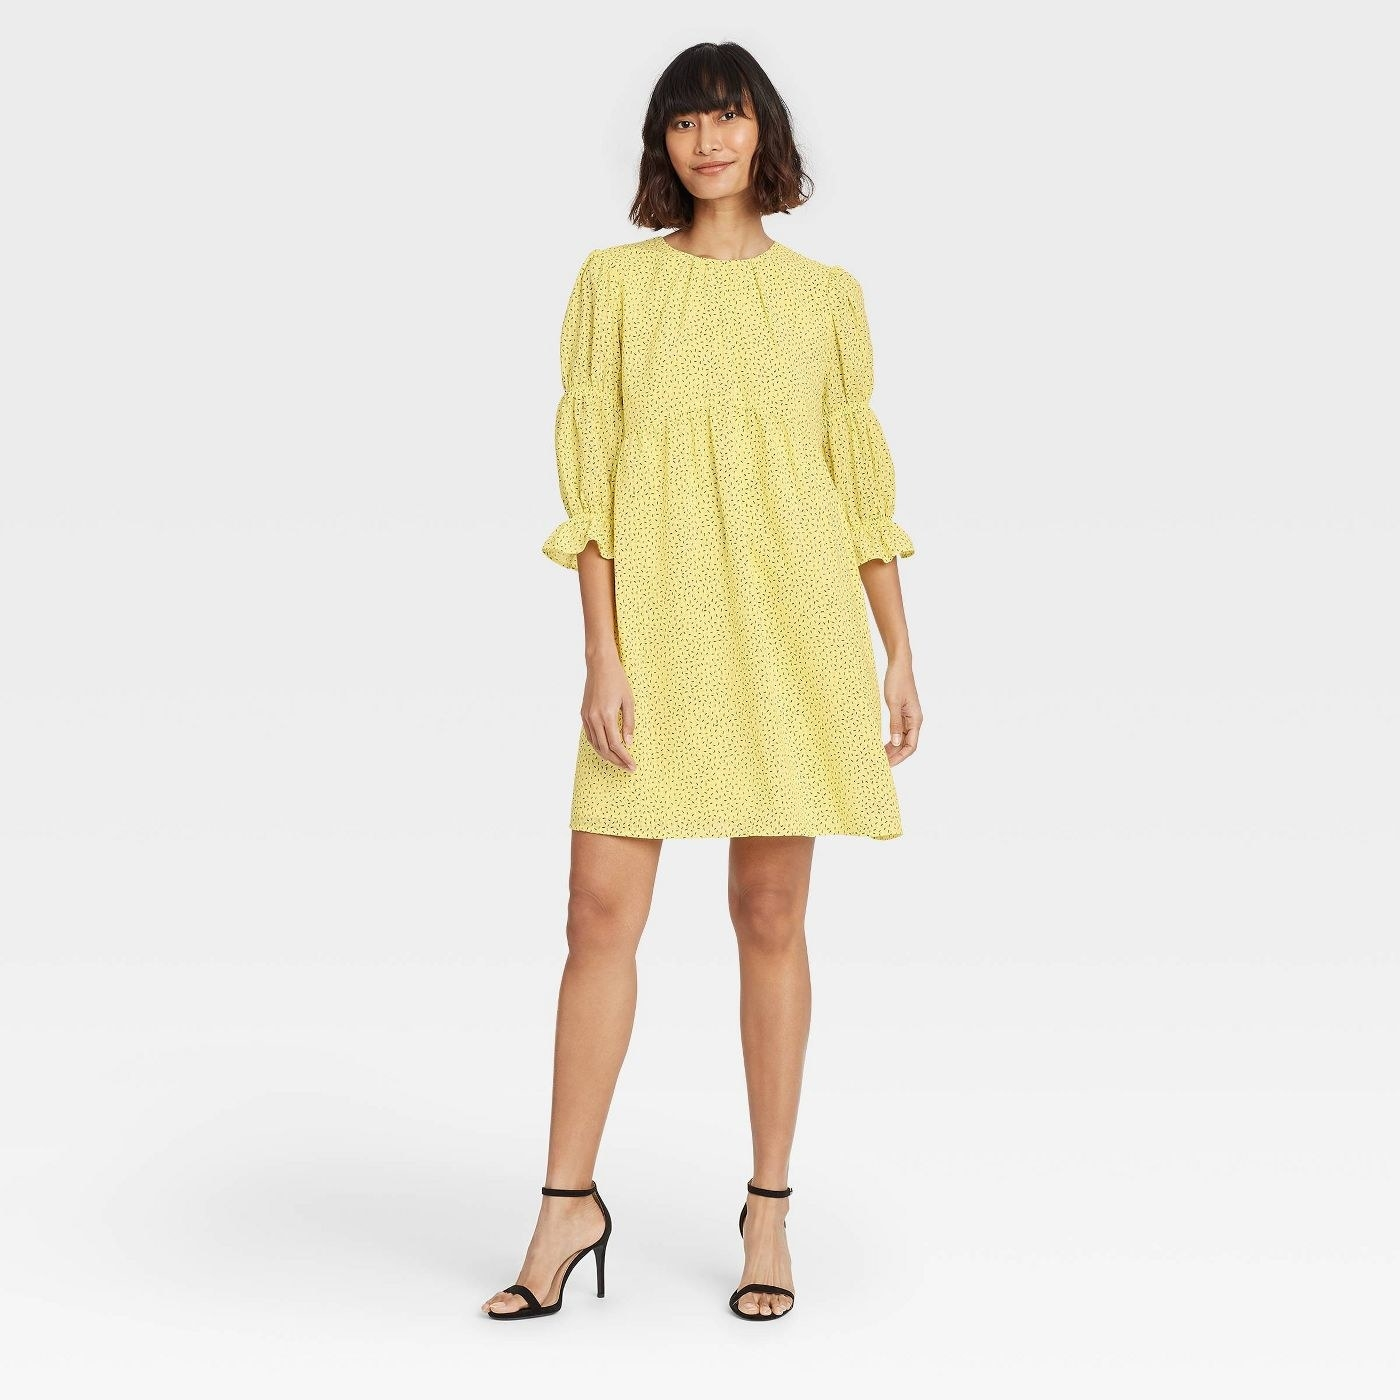 Model wearing yellow dress with black dots, the dress stops above the knee